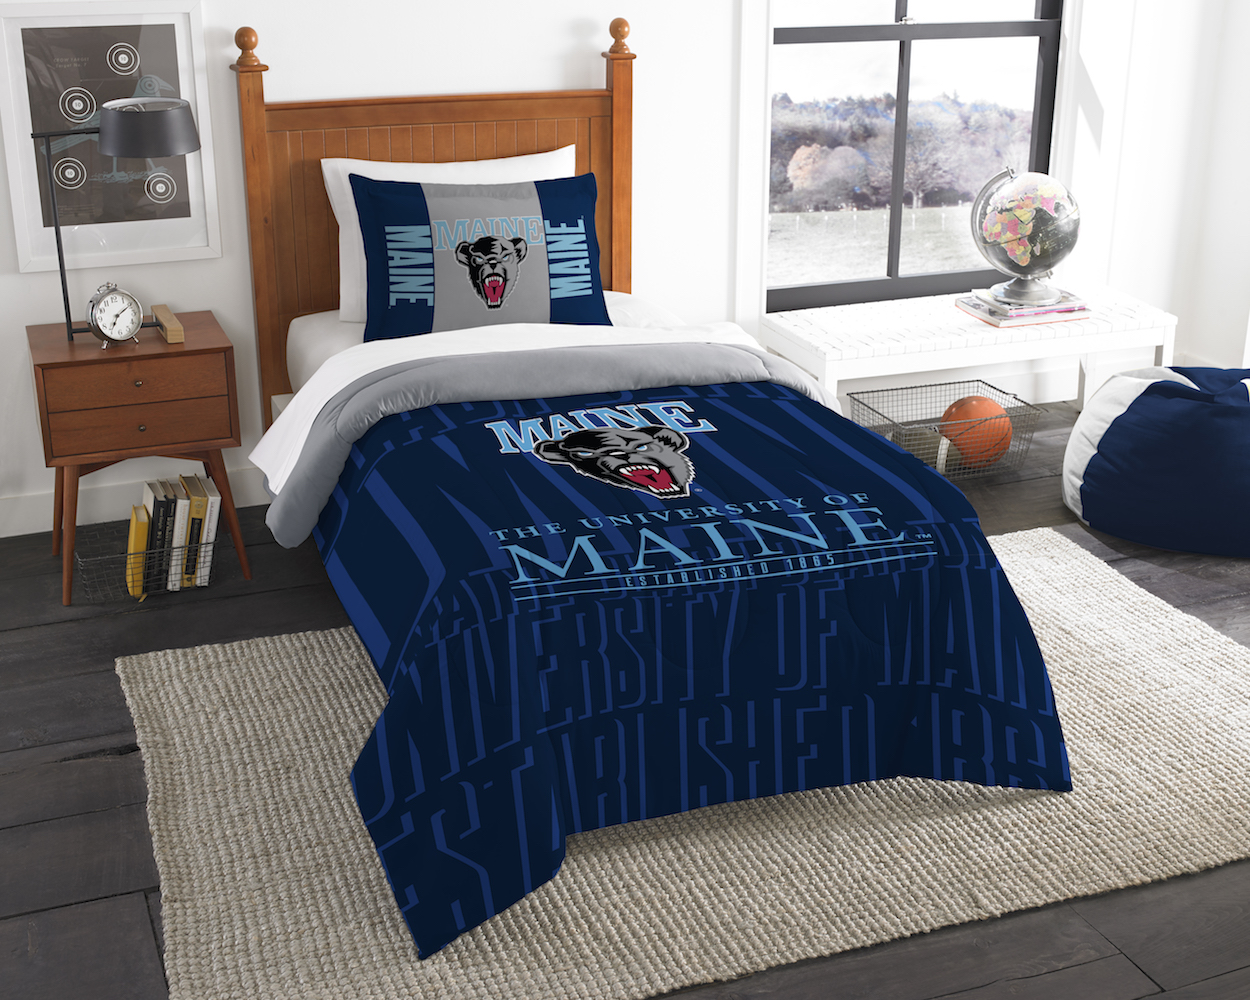 Maine Black Bears Twin Comforter Set with Sham